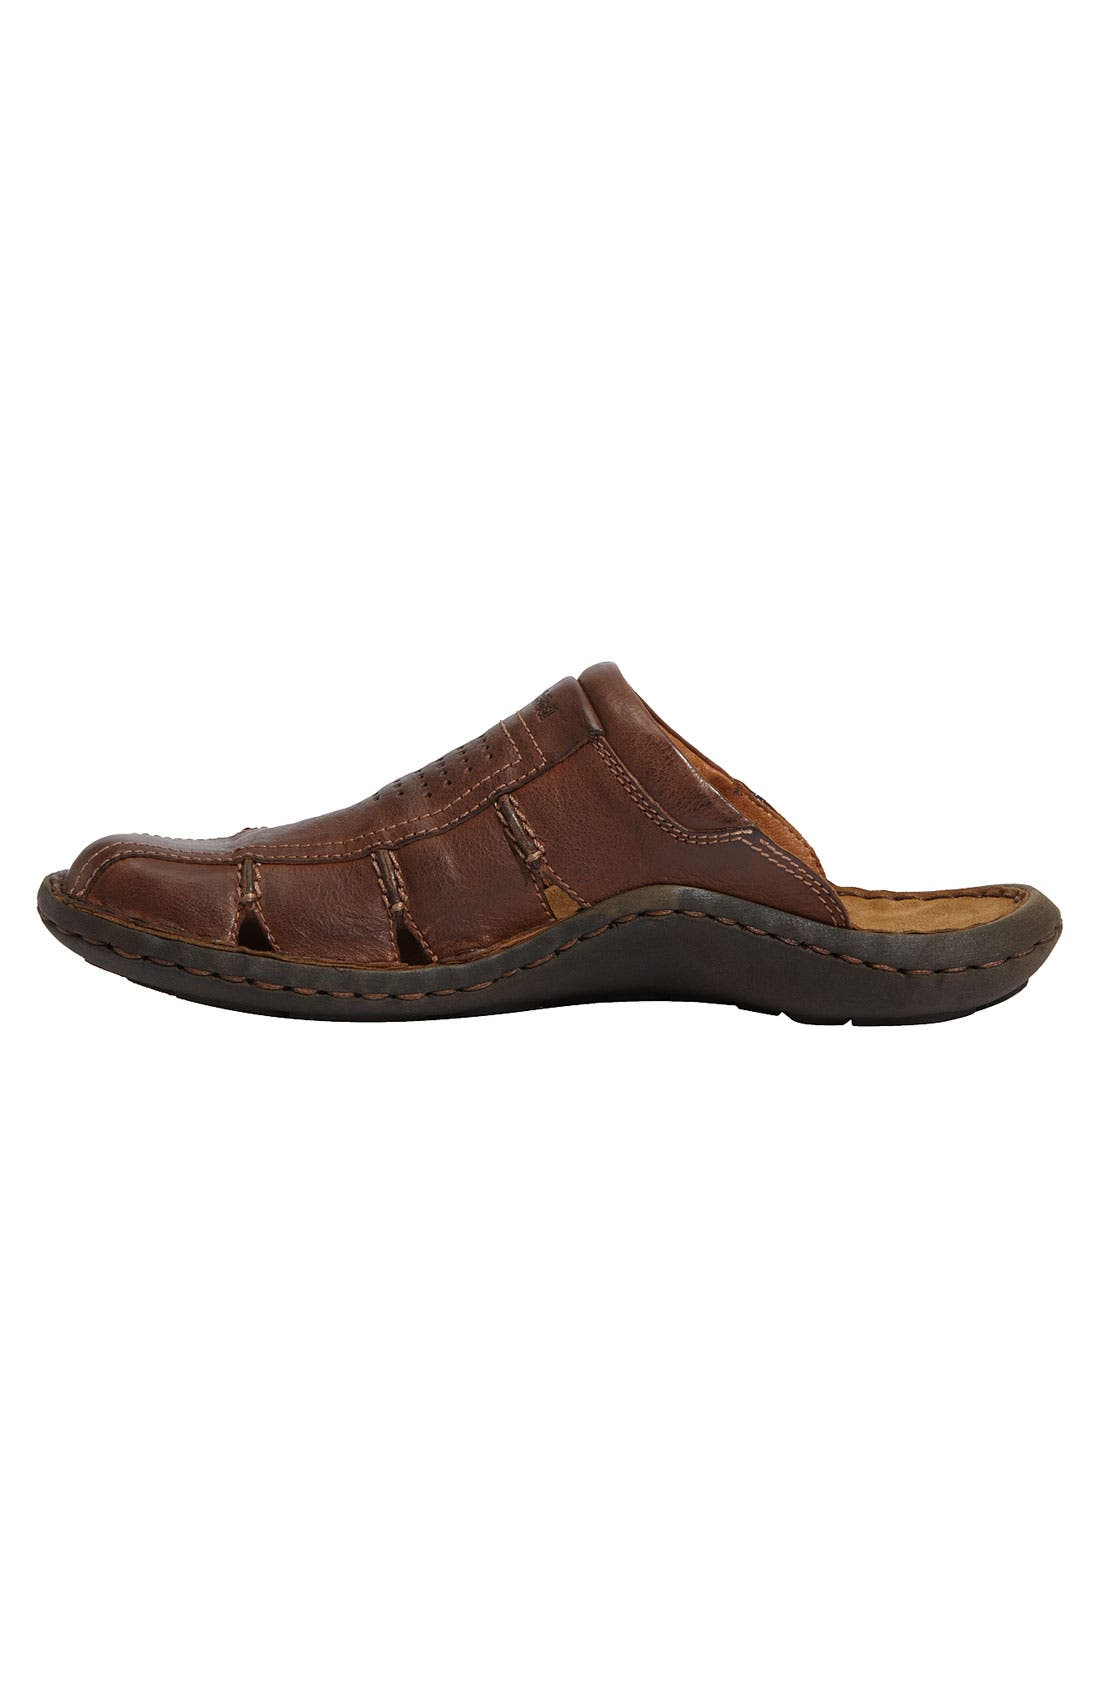 Alternate Image 2  - Josef Seibel 'Lawson' Clog Sandal